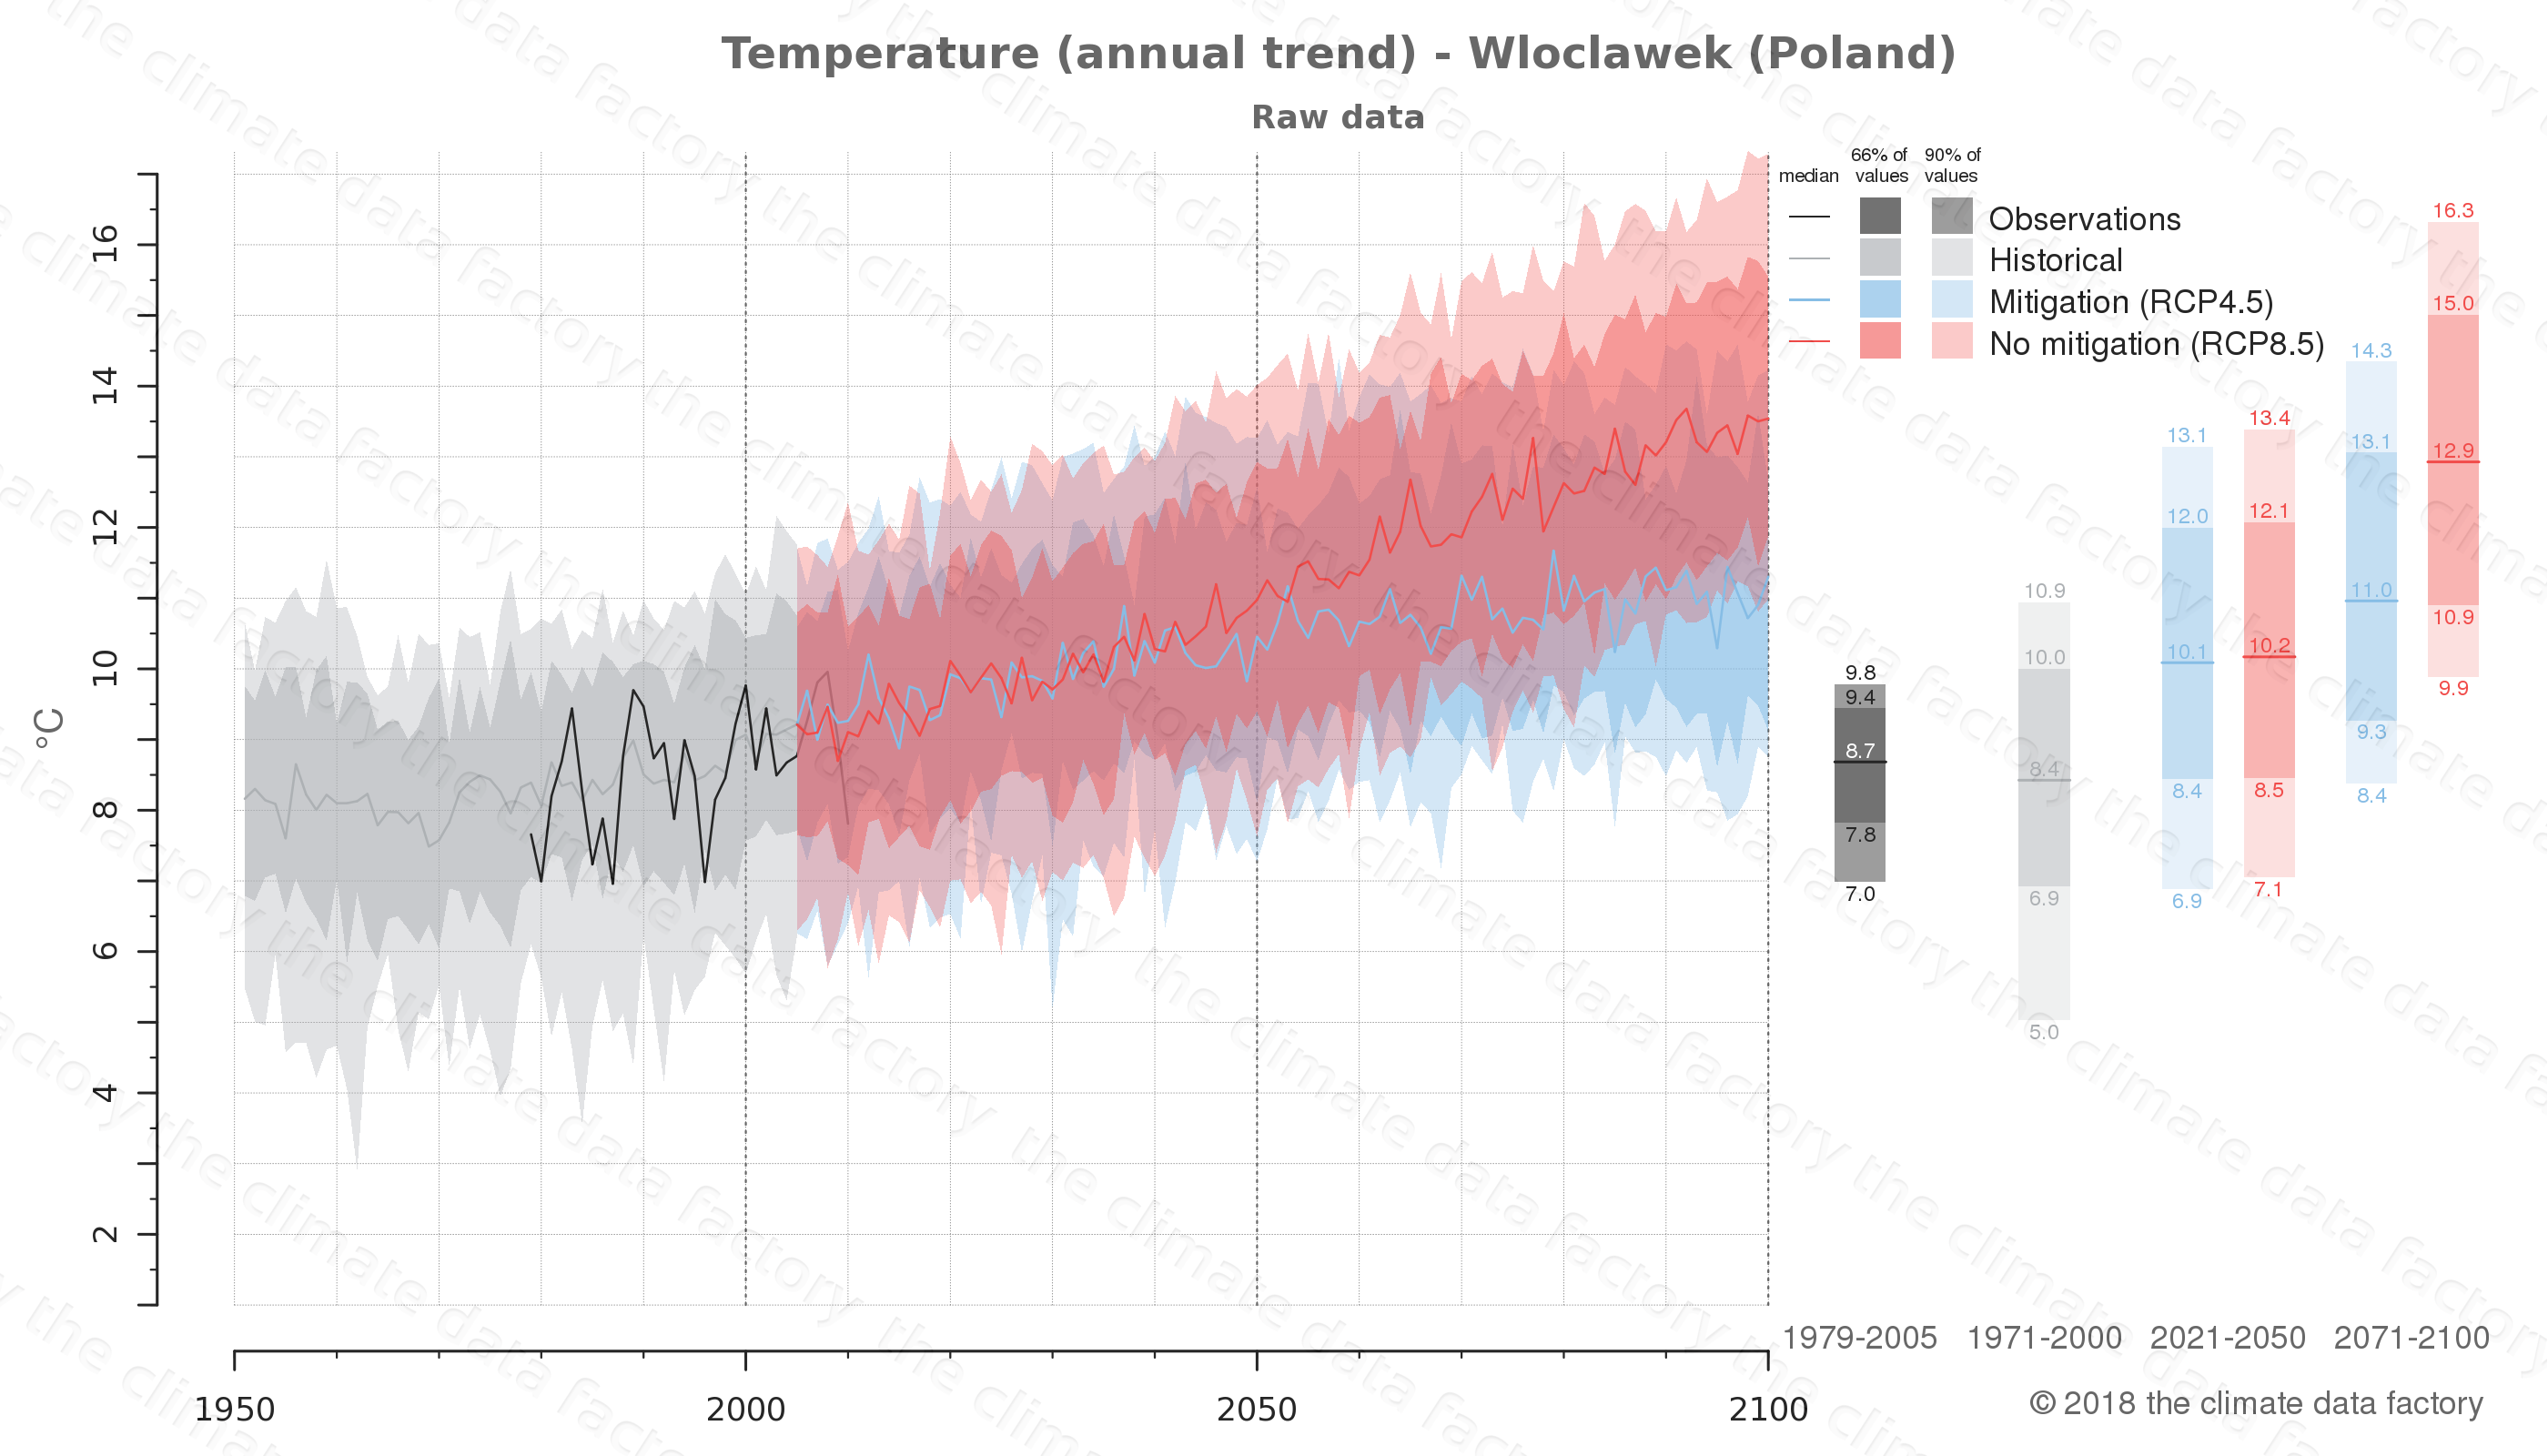 climate change data policy adaptation climate graph city data temperature wloclawek poland